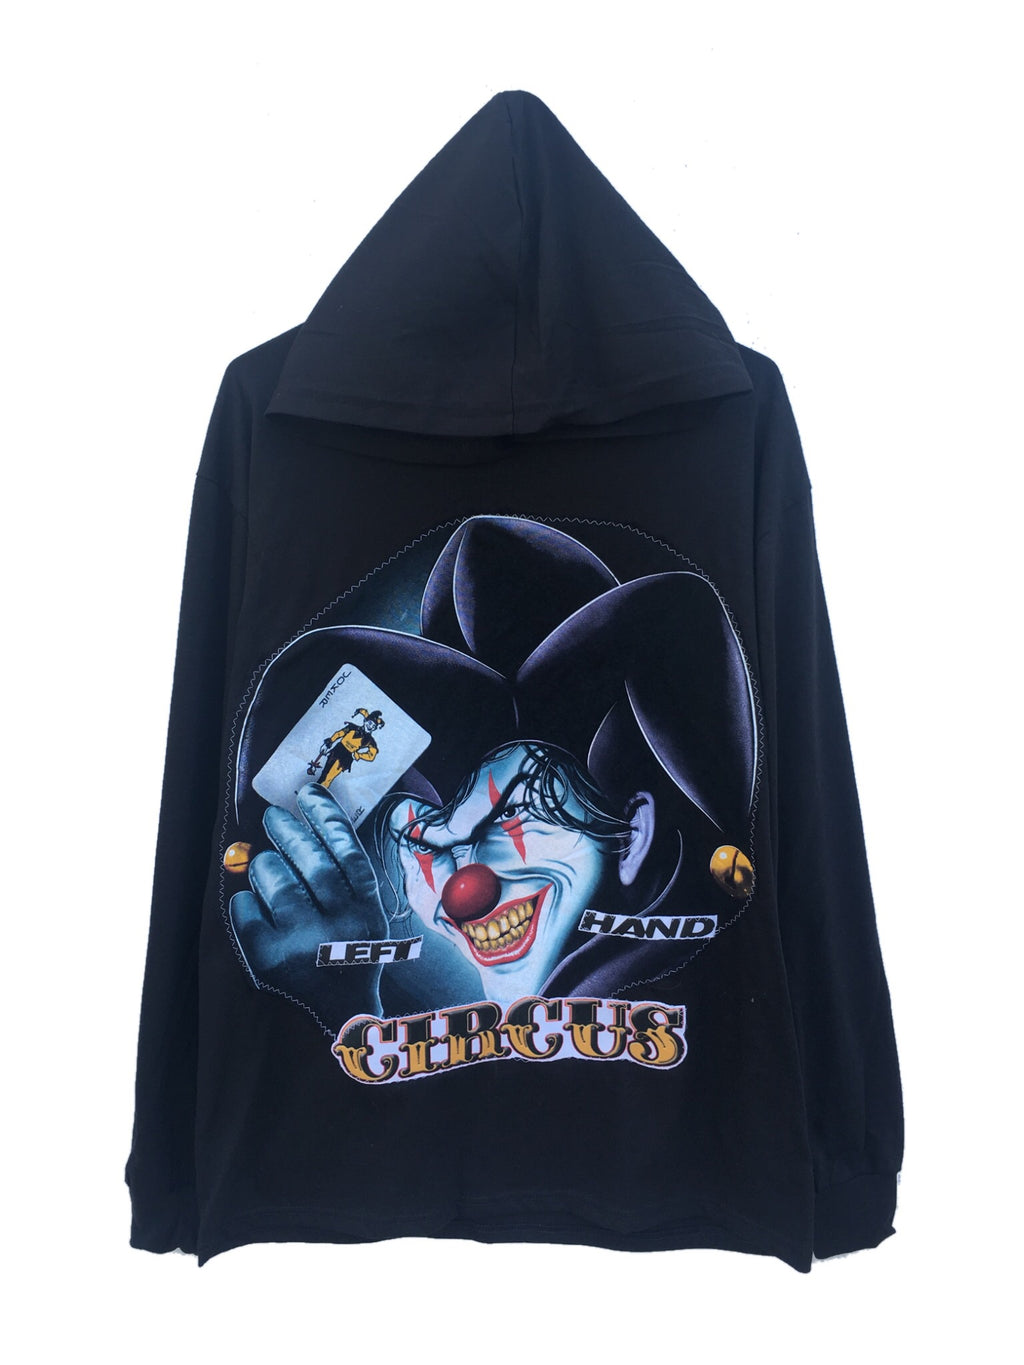 The joker hooded tee shirt